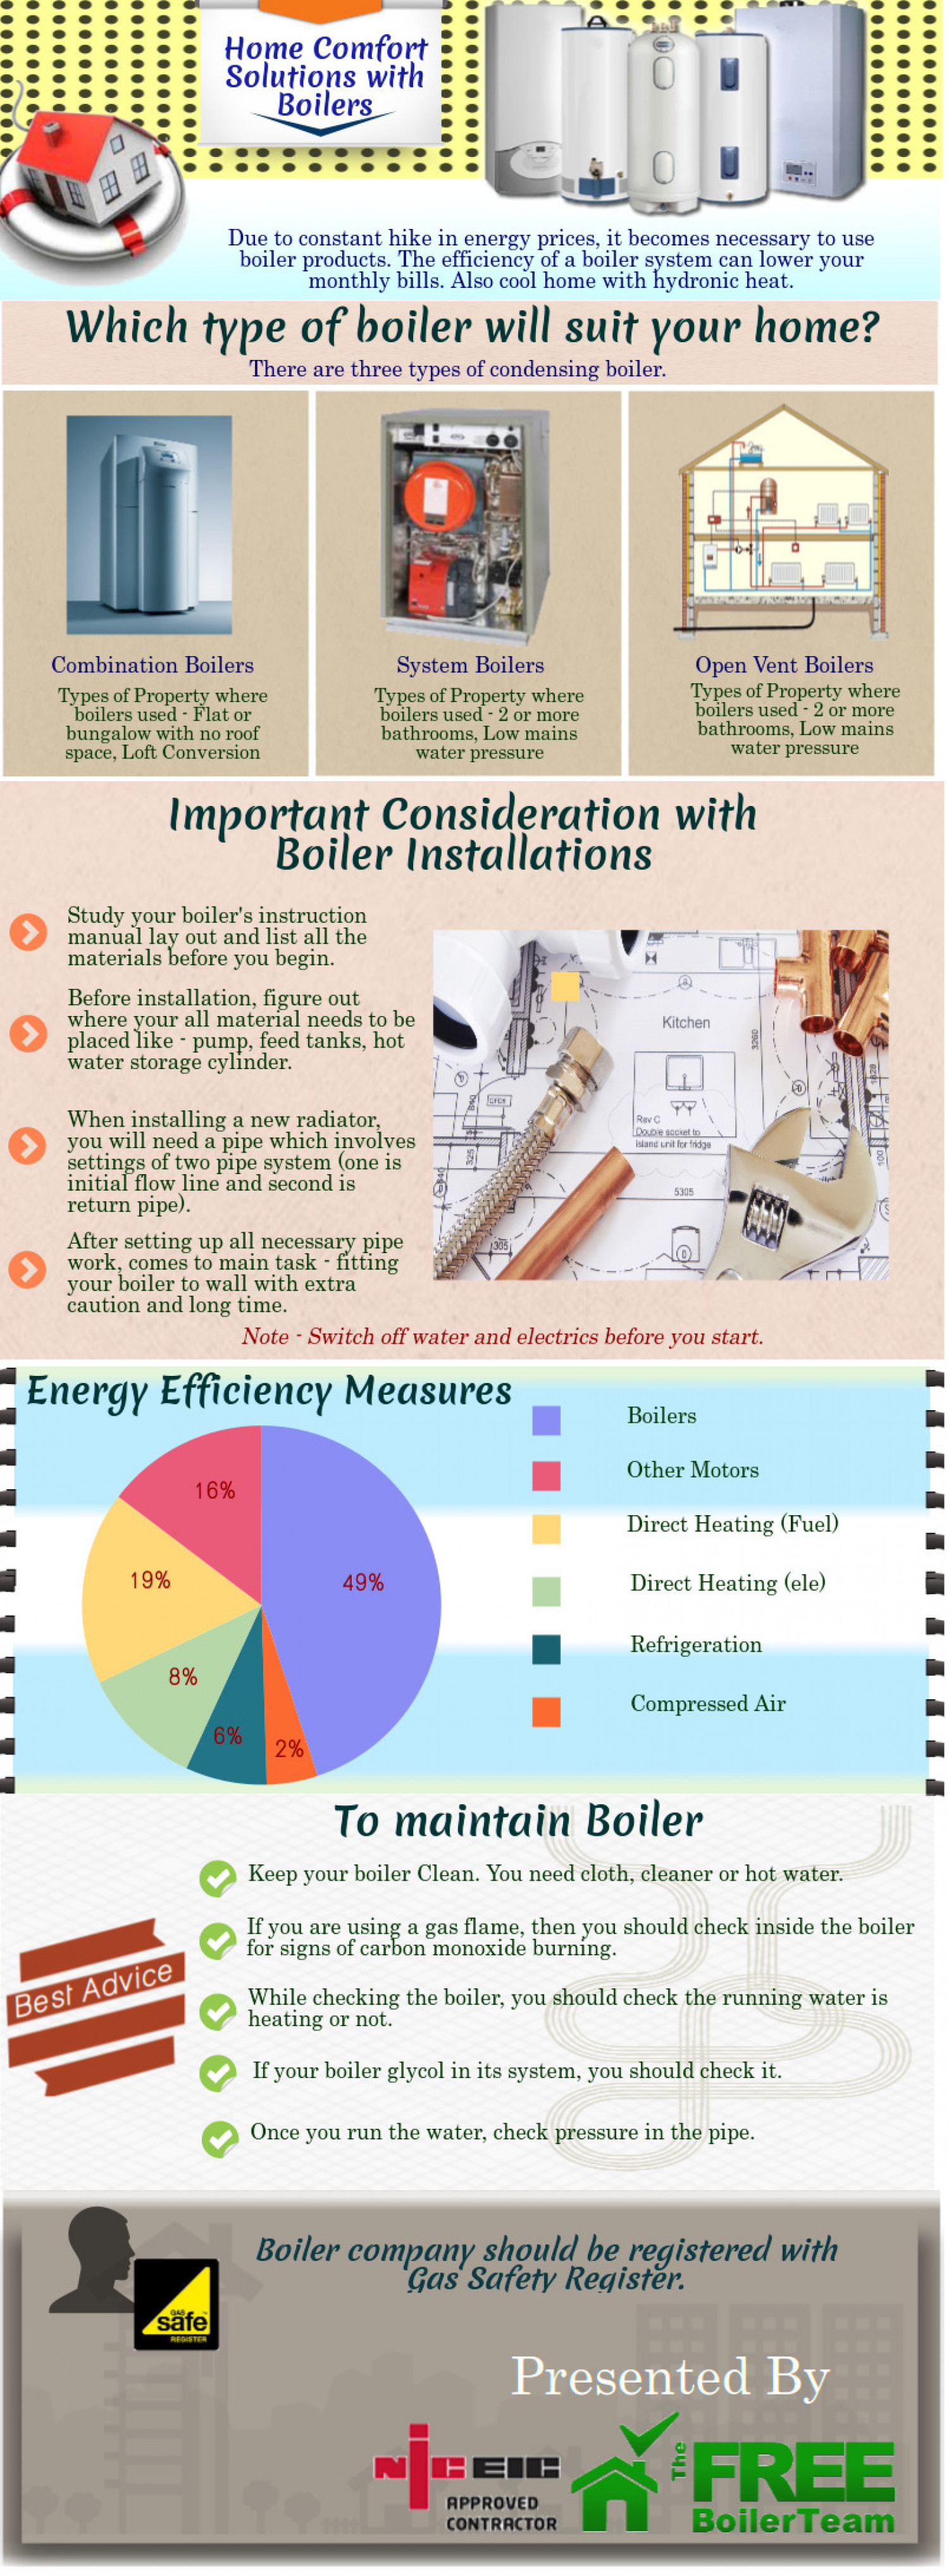 Home Comfort Solutions with Boilers Infographic